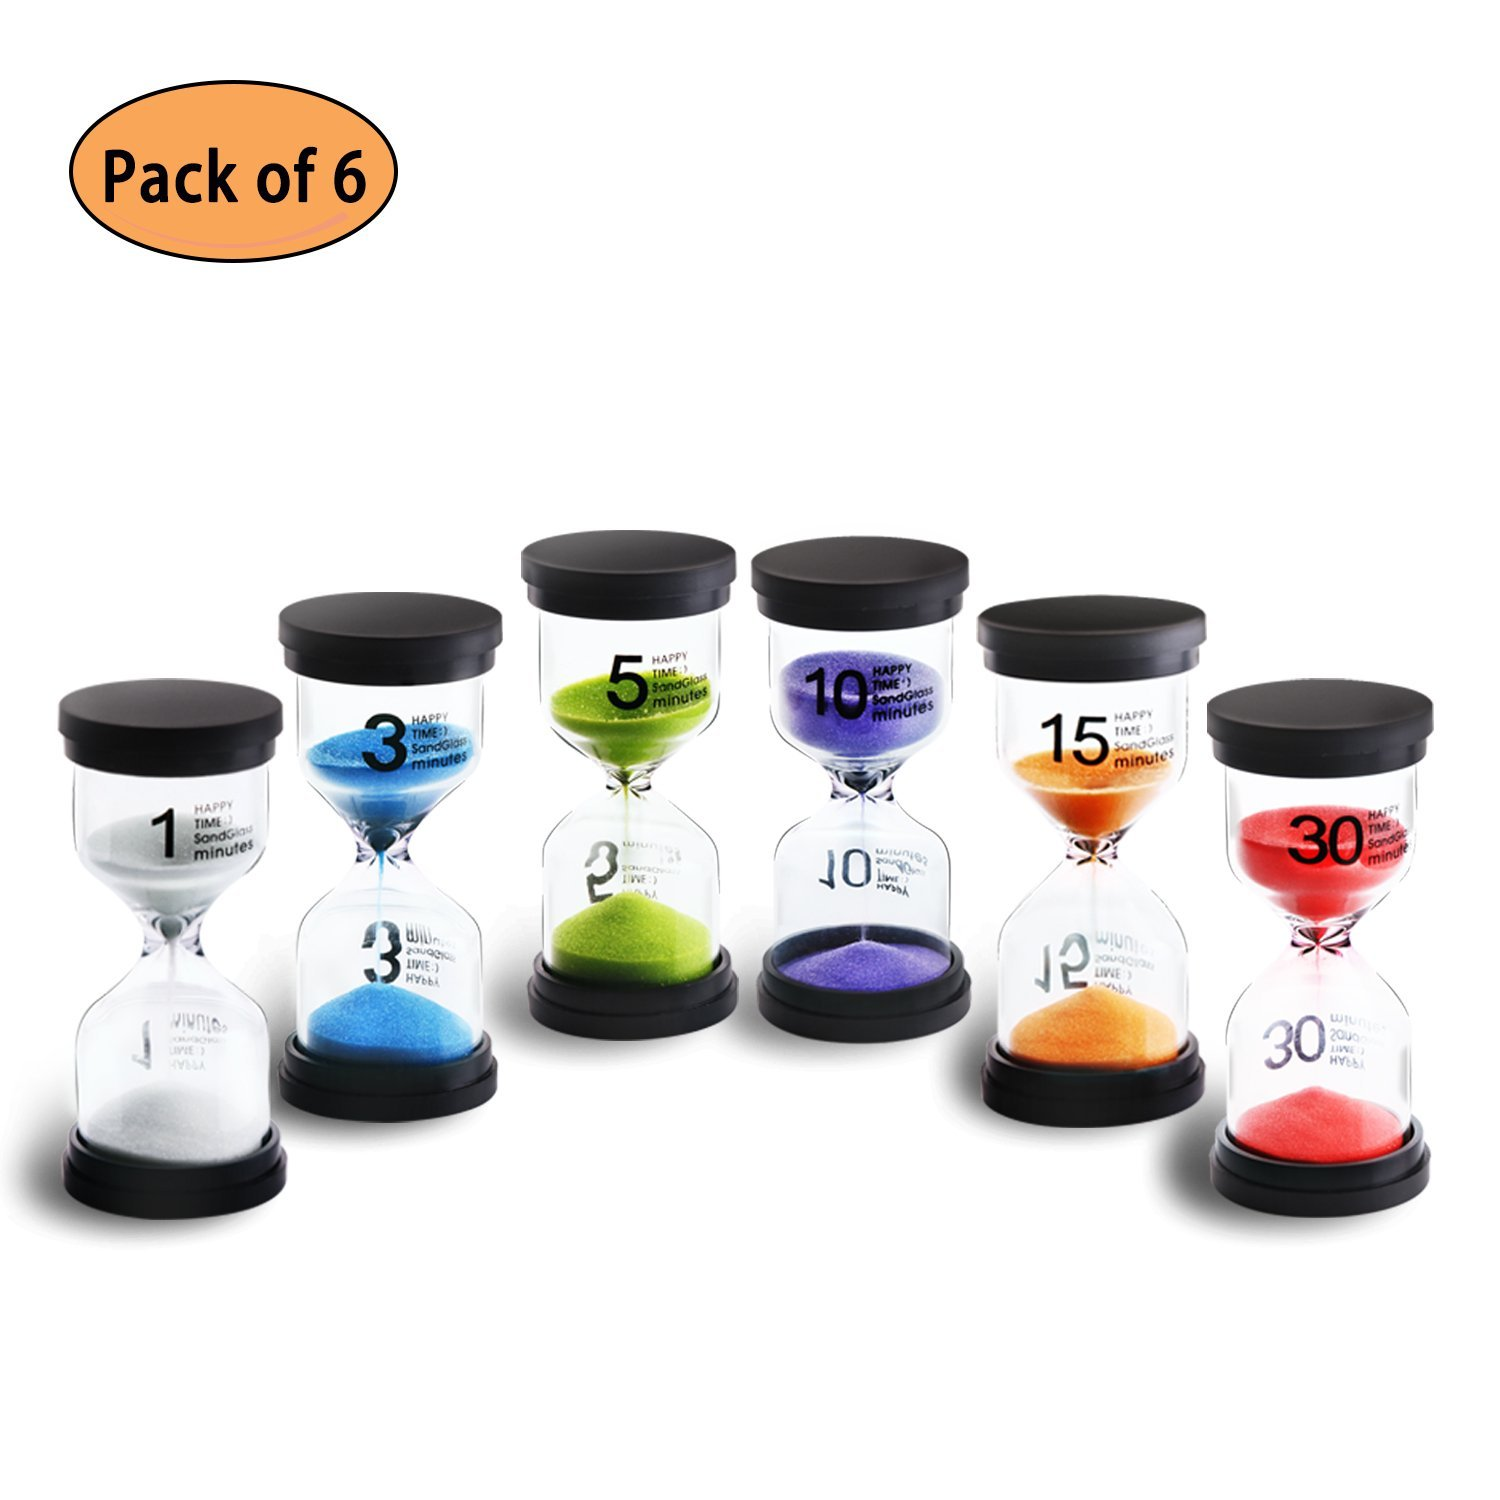 Sand Timer KeeQii 6 Colors Hourglass Timer 1min / 3mins / 5mins / 10mins / 15mins /30mins Sandglass Timer for Kids, Classroom, Kitchen, Games, Brushing Timer, Home Office Decoration Timers (6pcs)